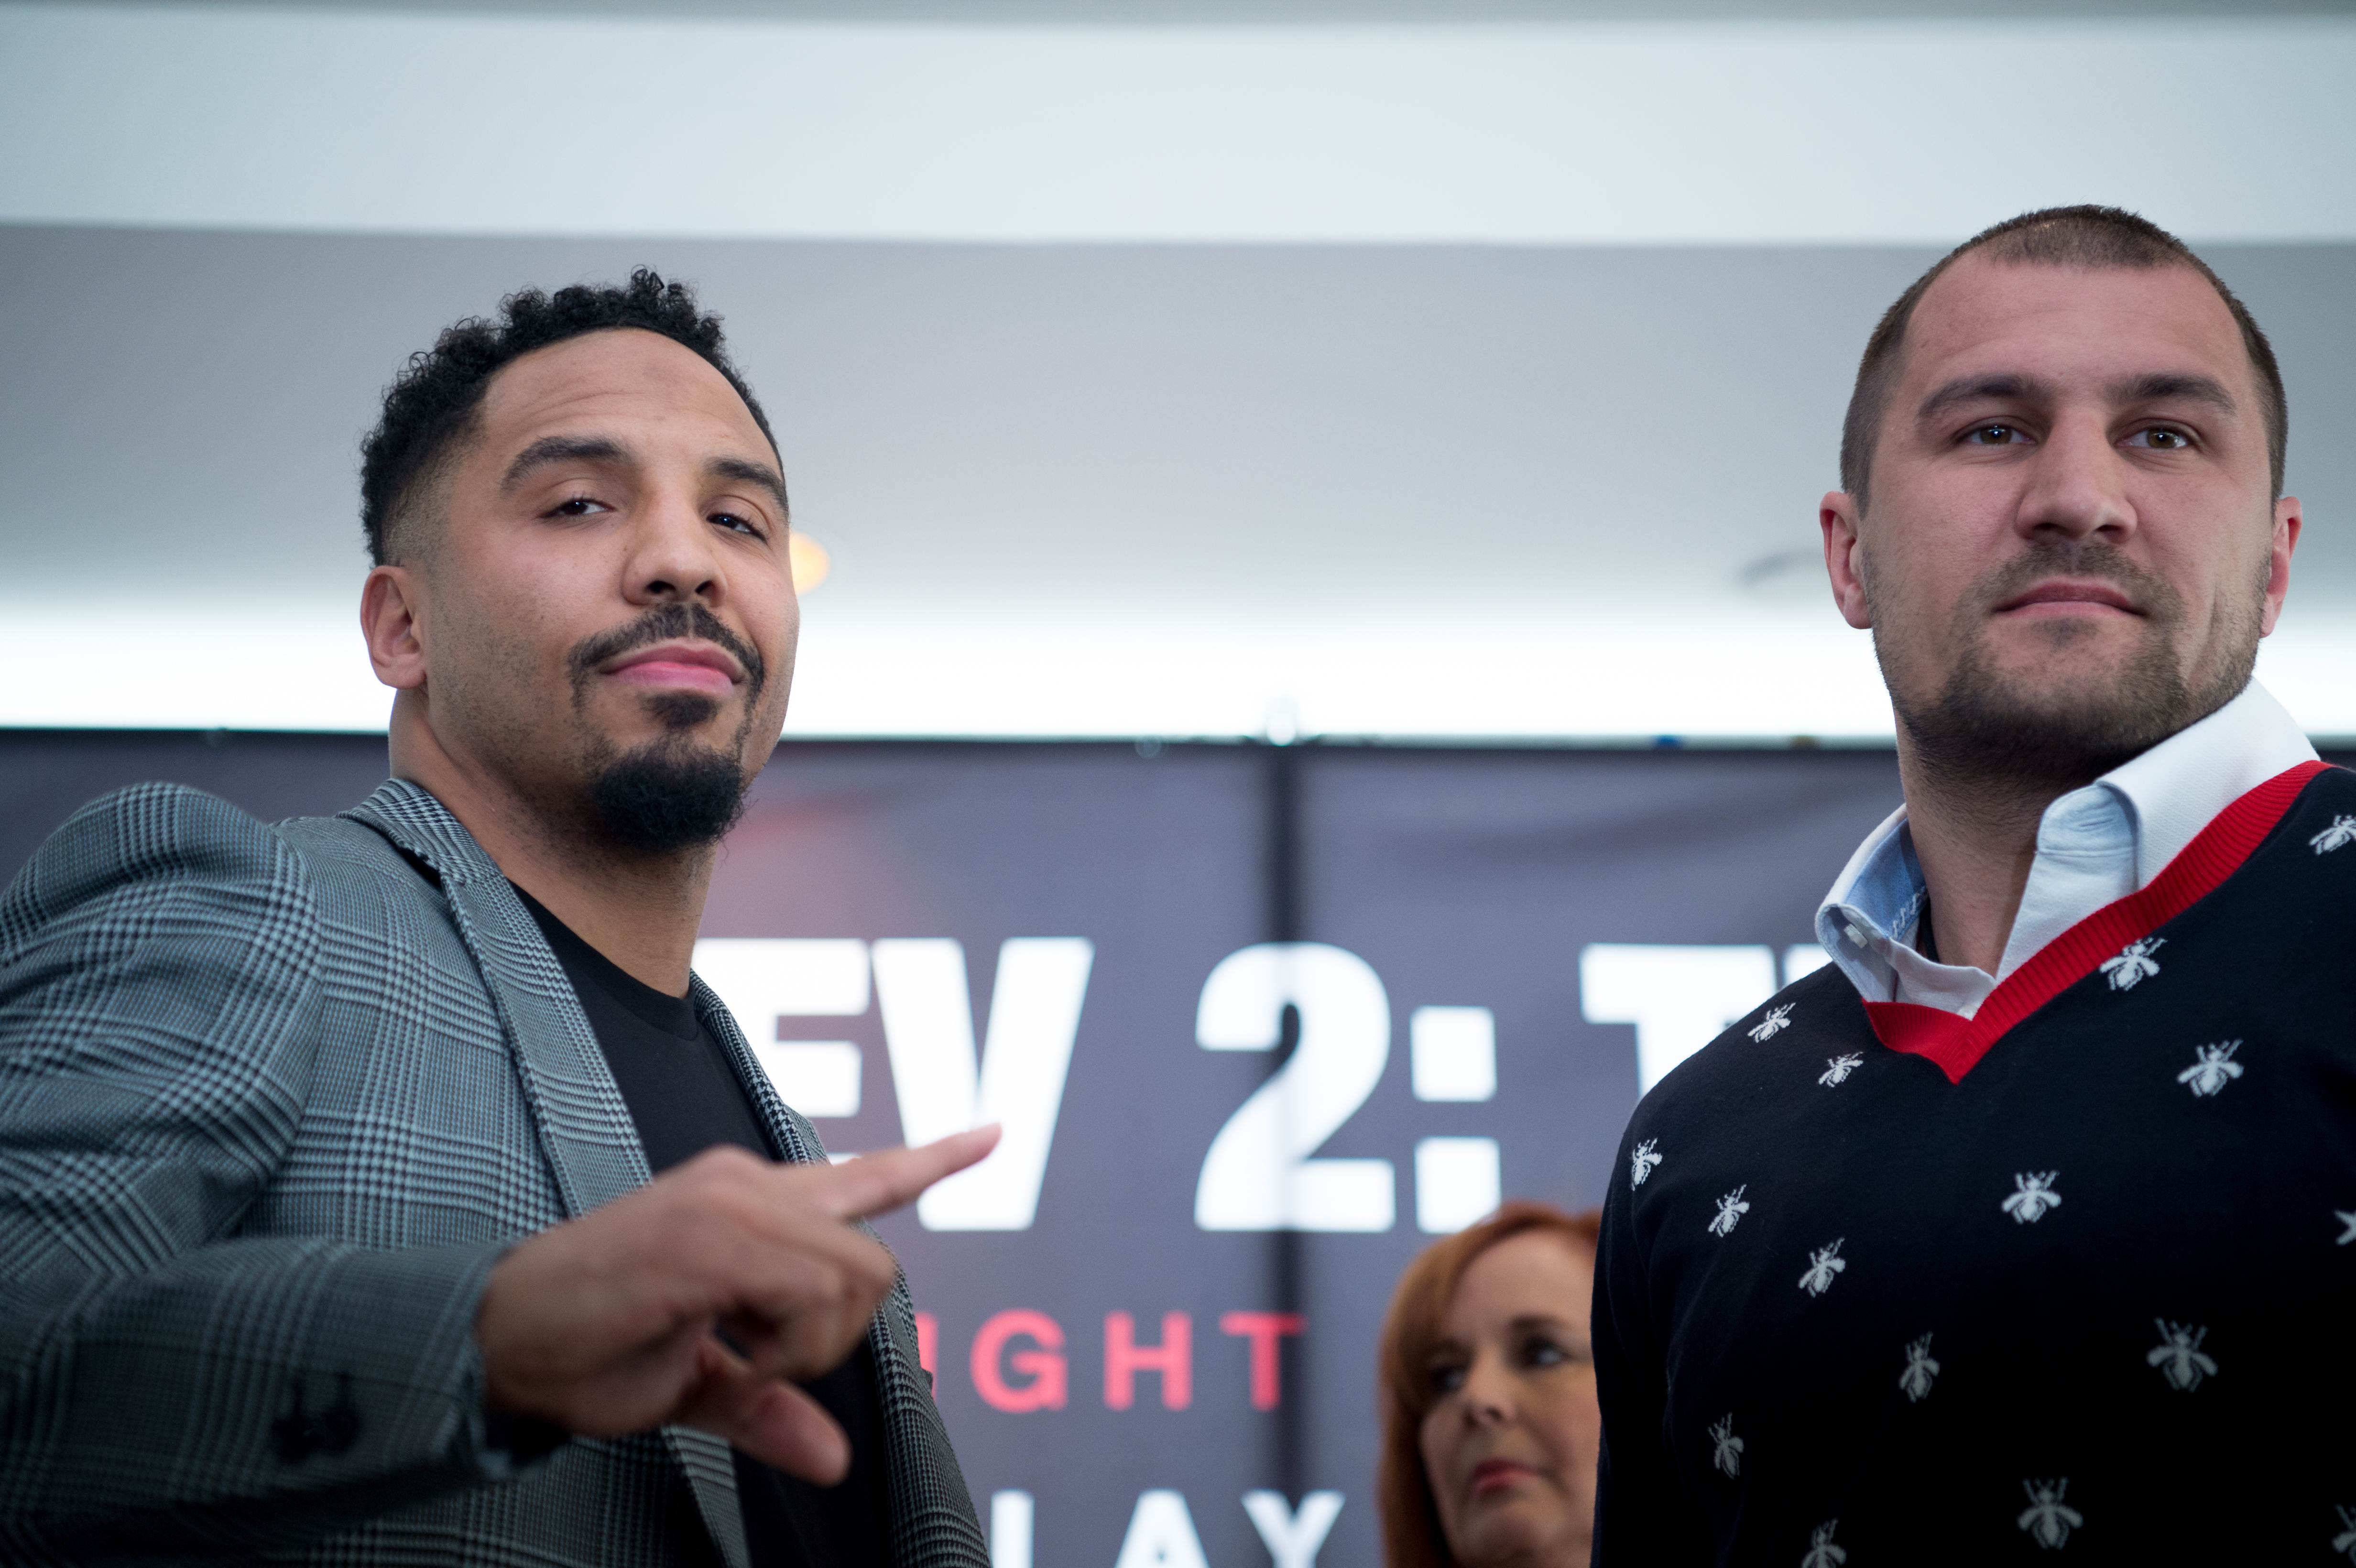 NYC Ward vs Kov Press Con by Squint-23